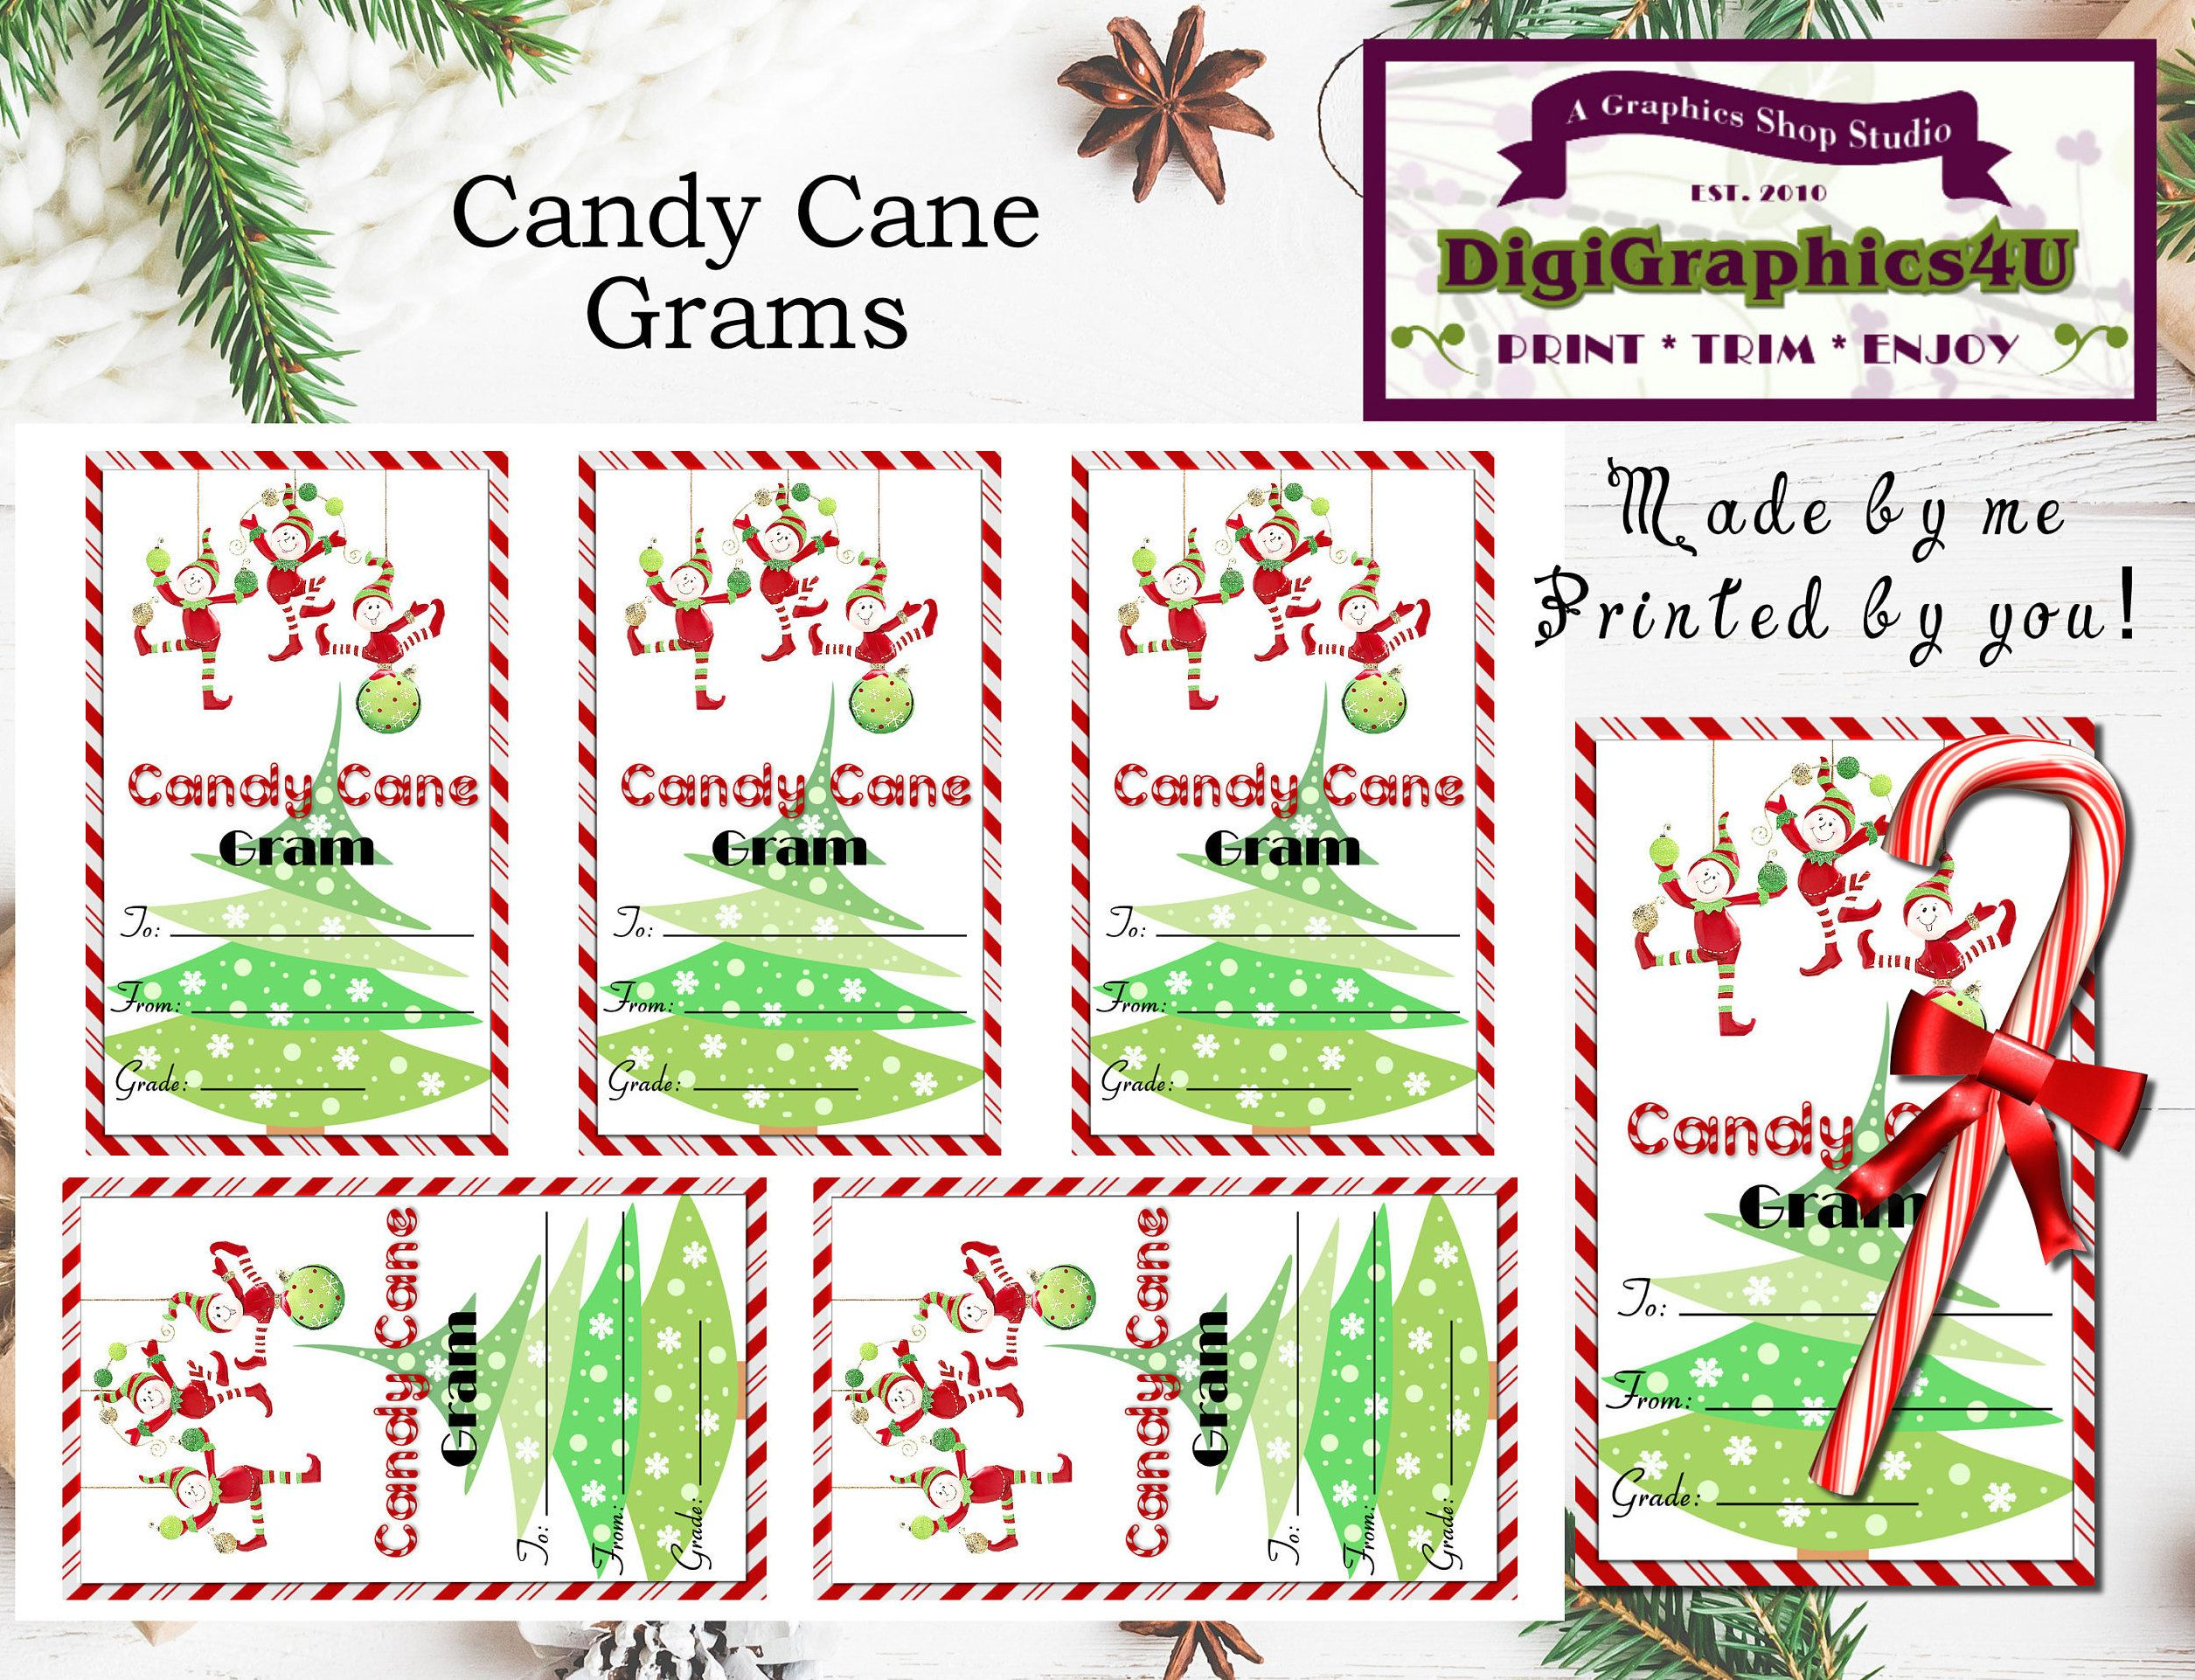 Grams Candy Cane Template